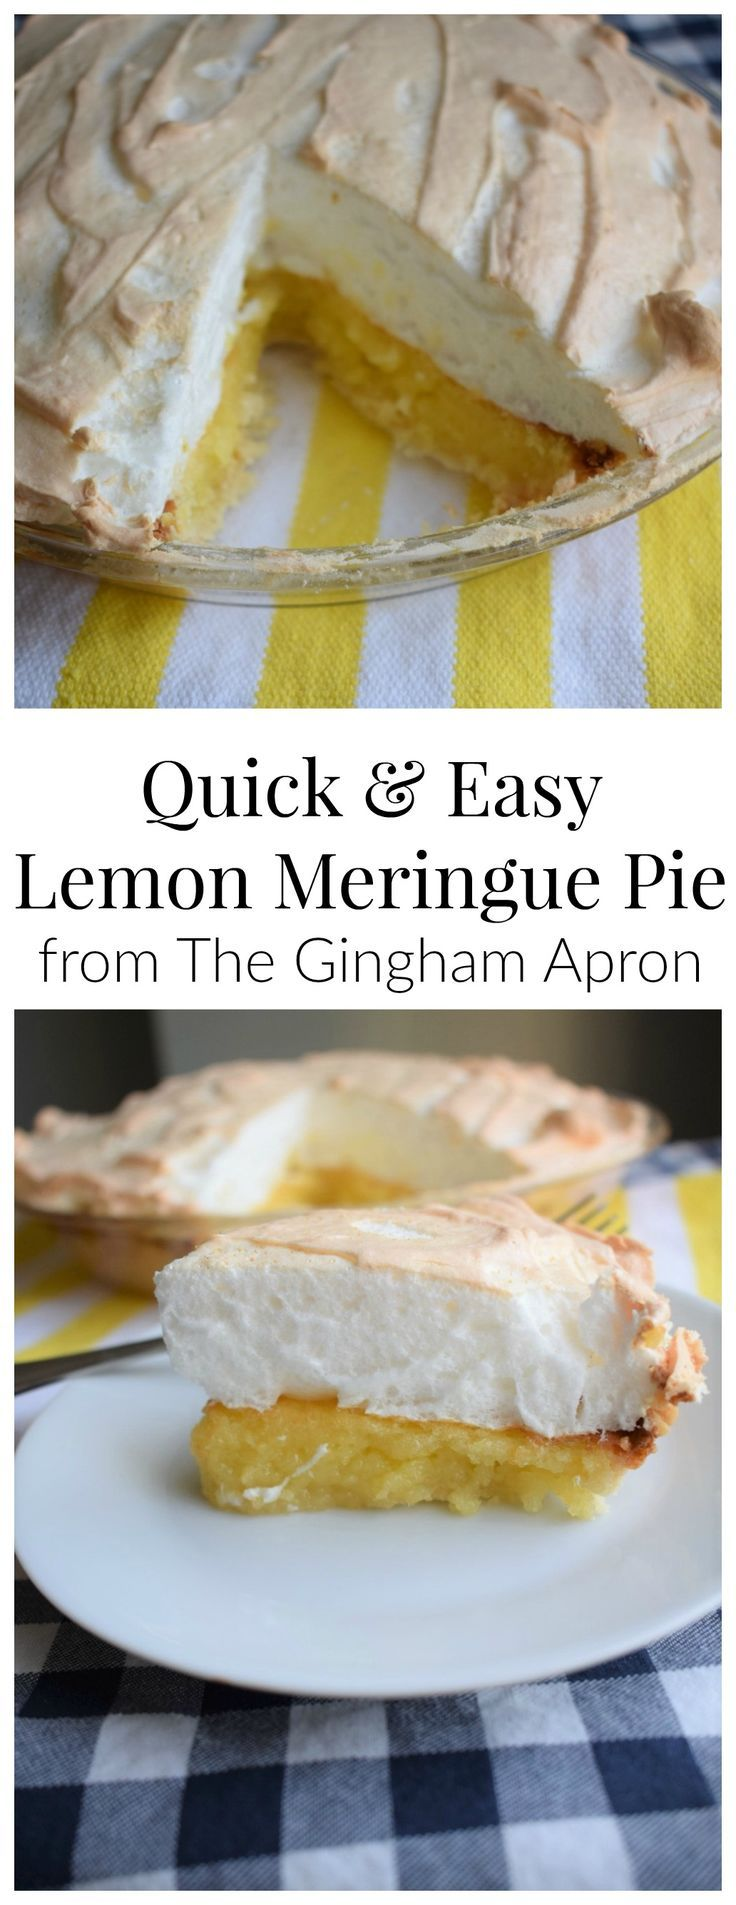 Quick and Easy Lemon Meringue Pie- this recipe starts with a lemon bar mix, and it's the easiest pie ever!